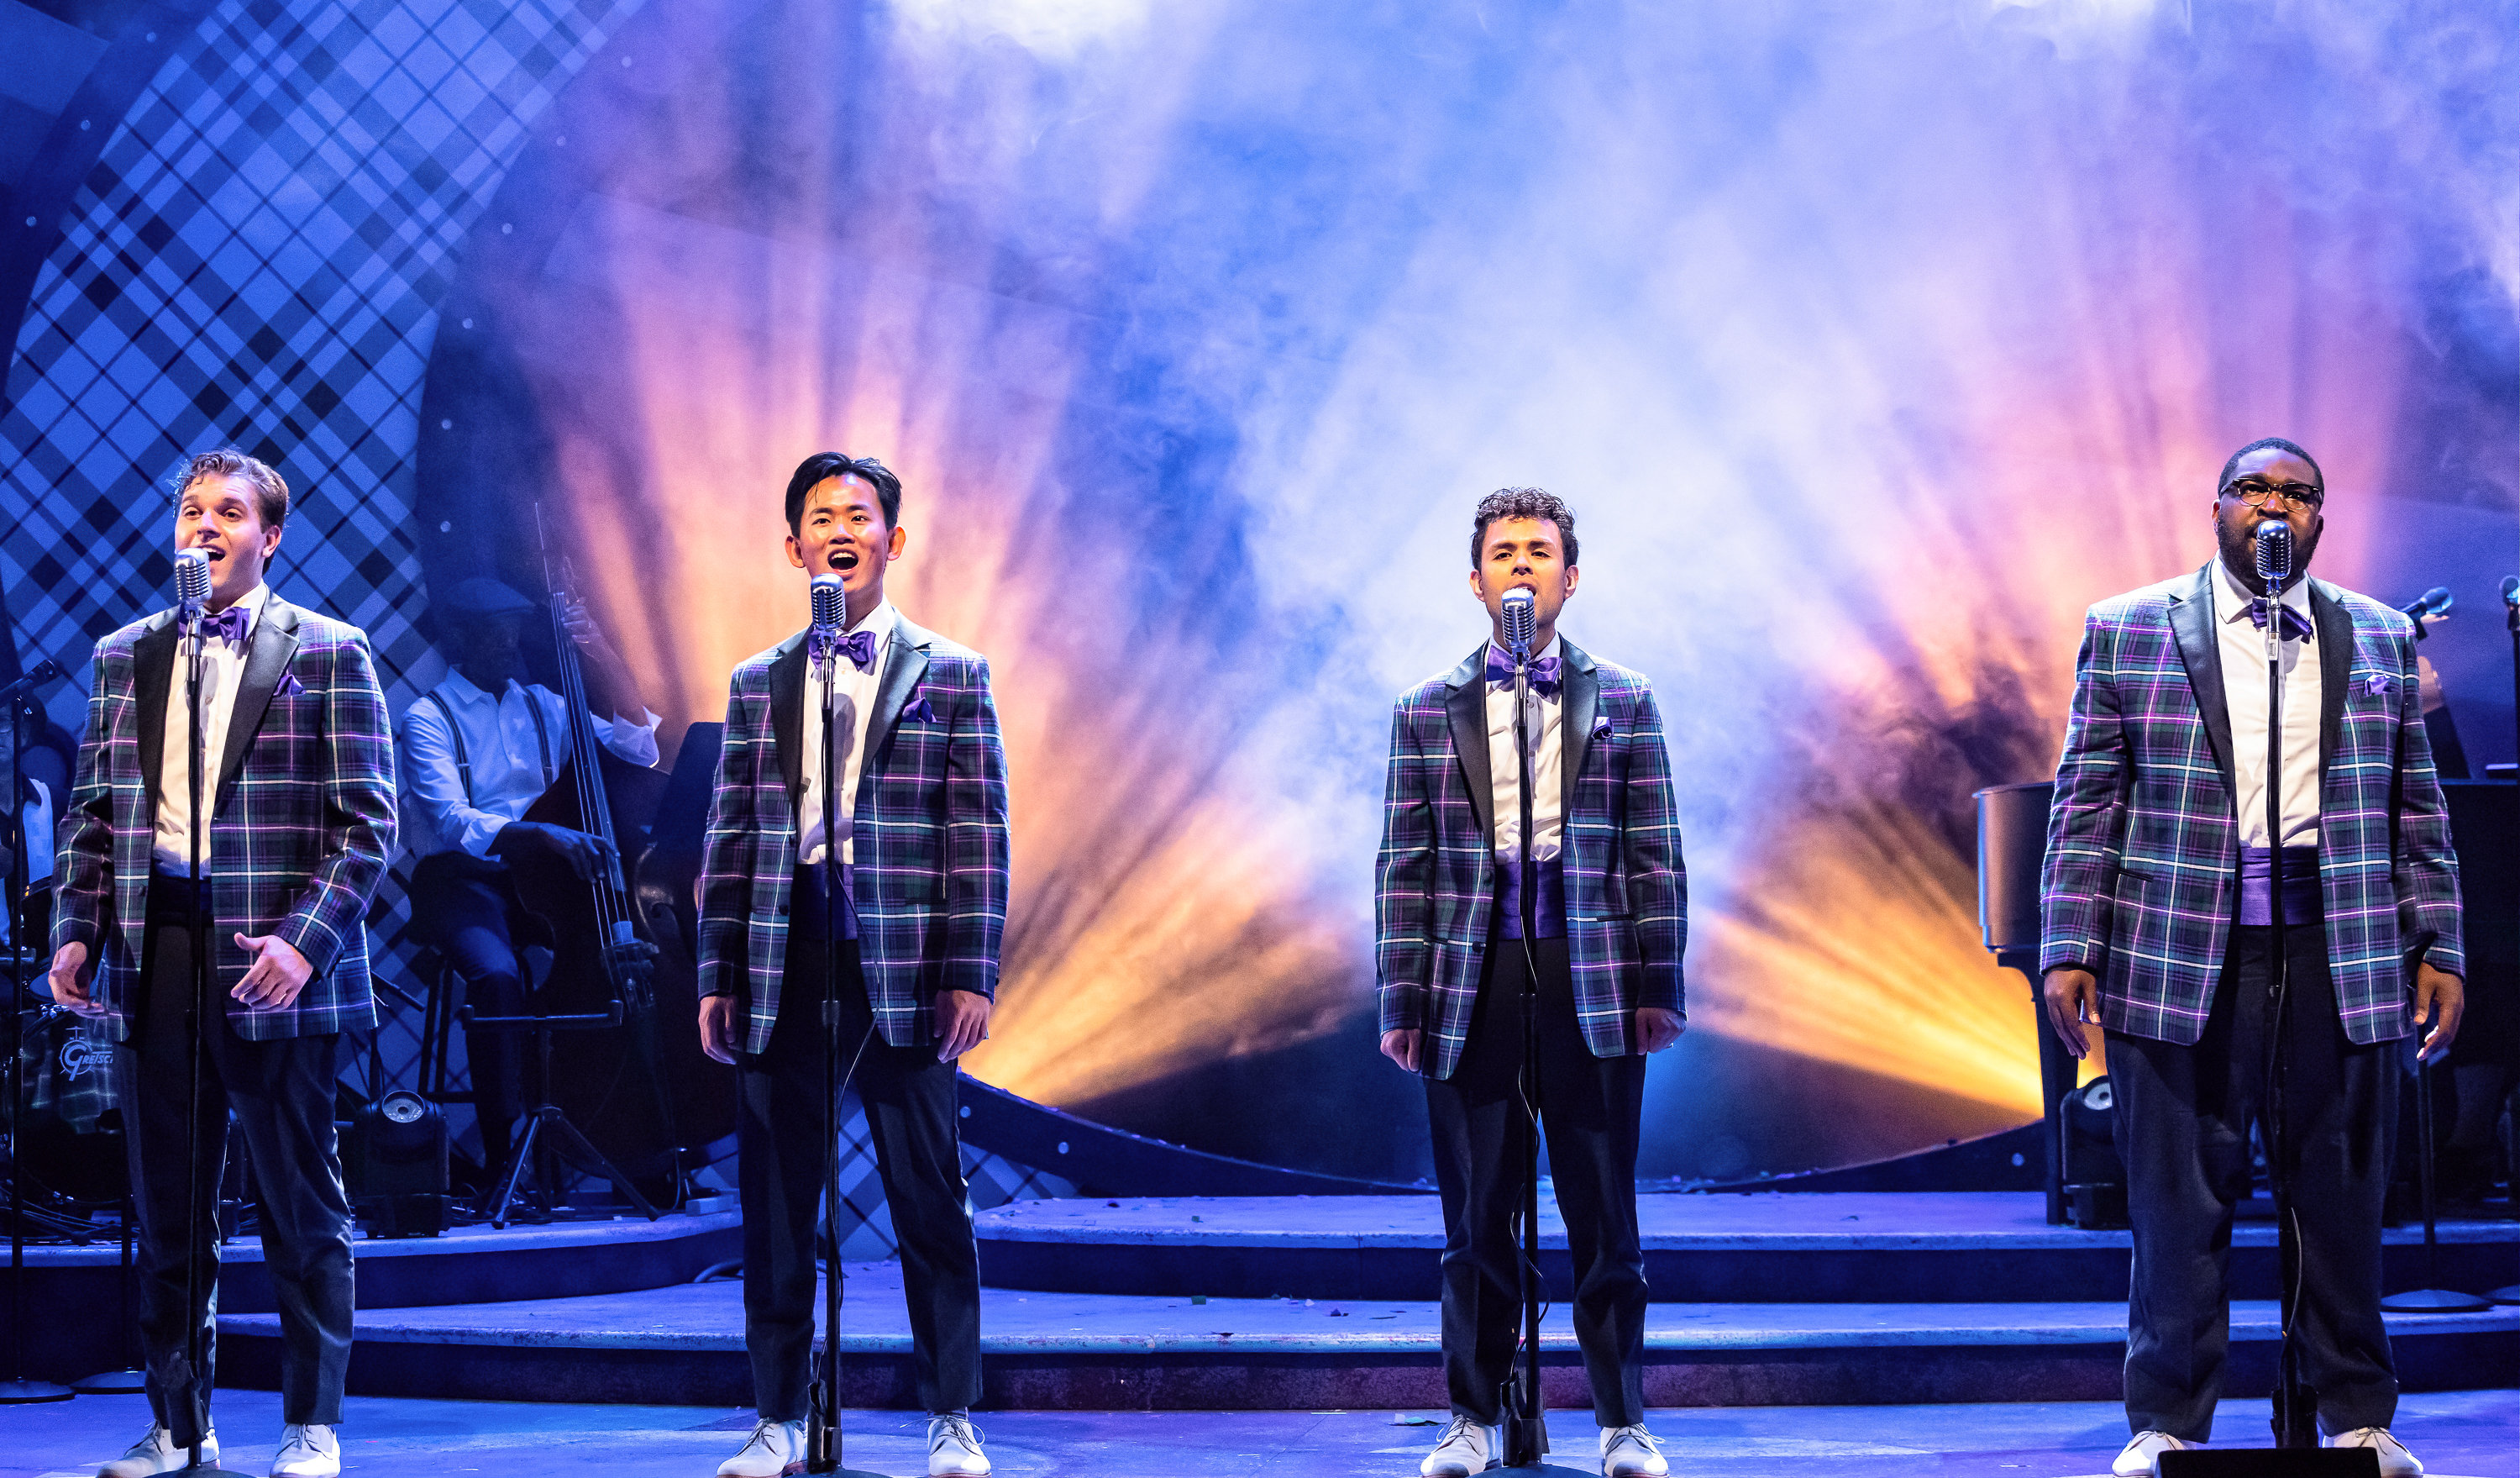 """Michael Ferraro (from left) Bryan Eng, Yando Lopez and A.D. Weaver star in the Drury Lane Production of """"Forever Plaid."""